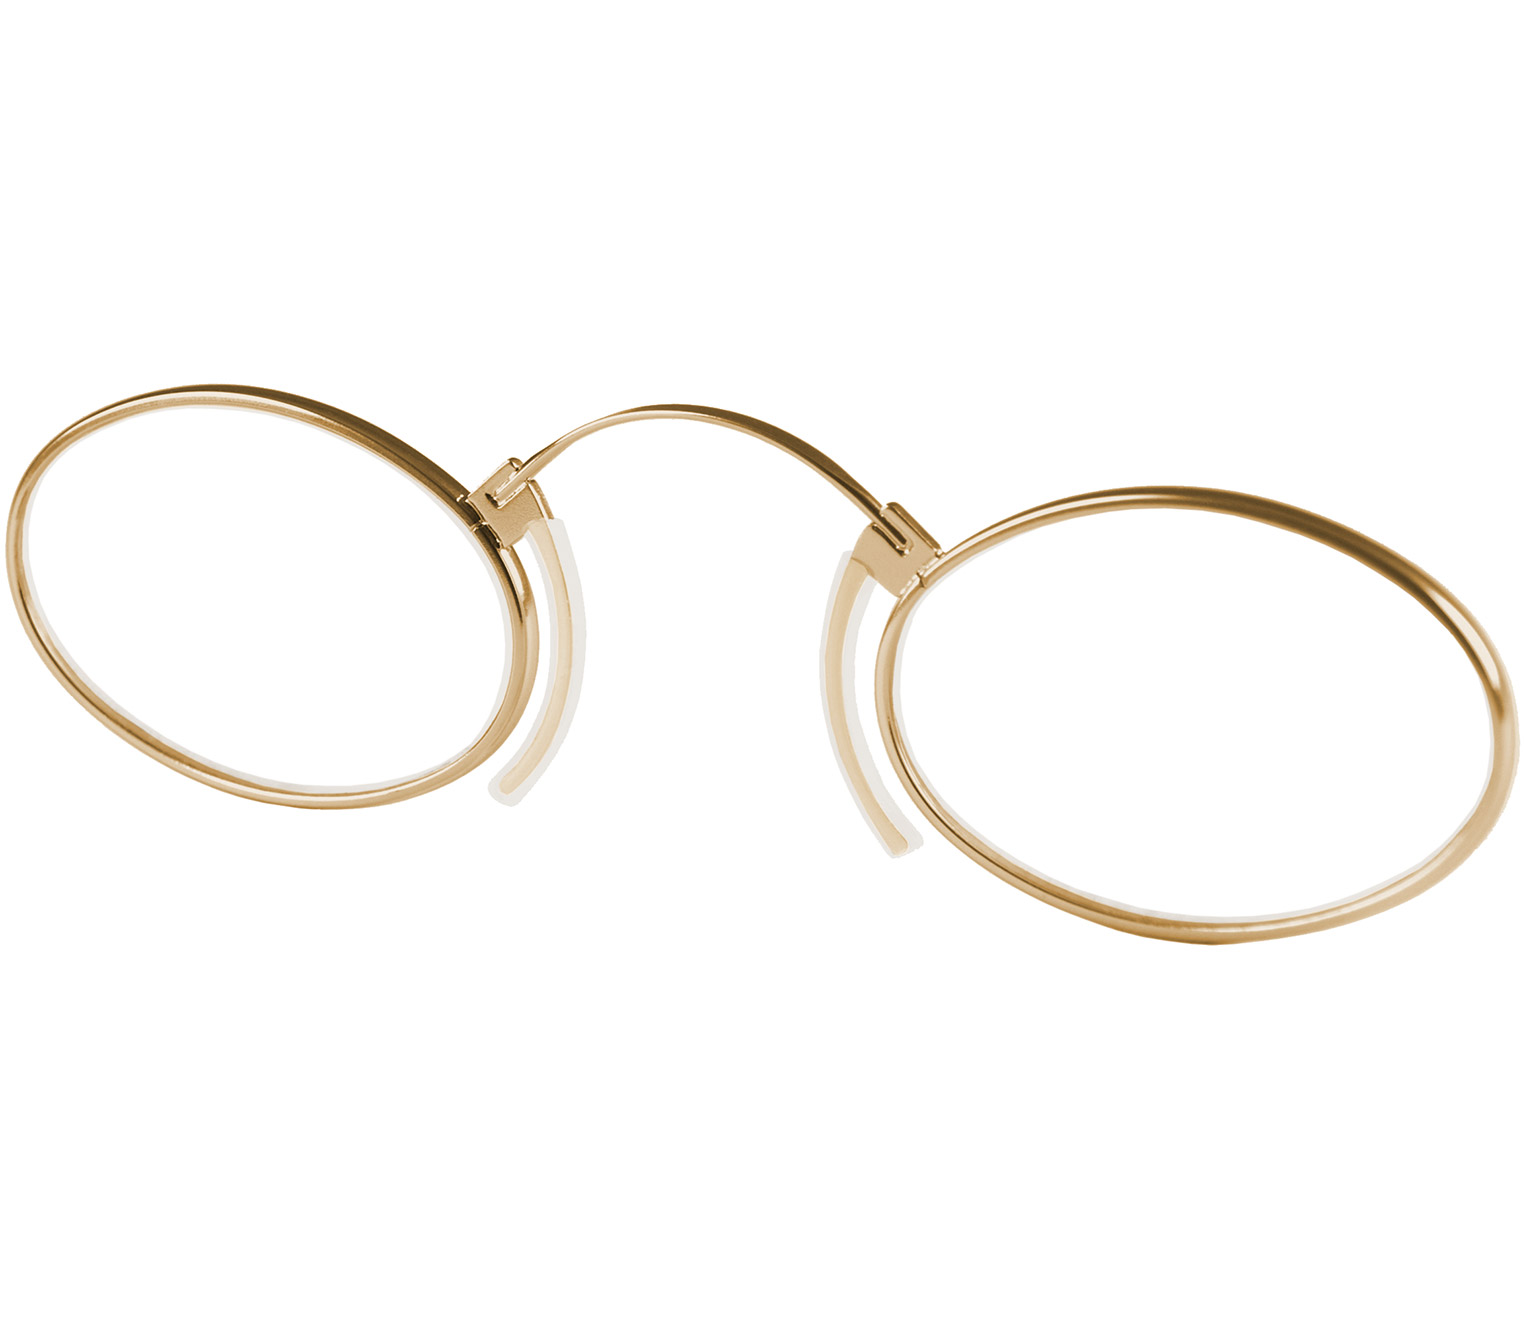 Main Image (Angle) - Clipper (Gold) Pince Nez Reading Glasses